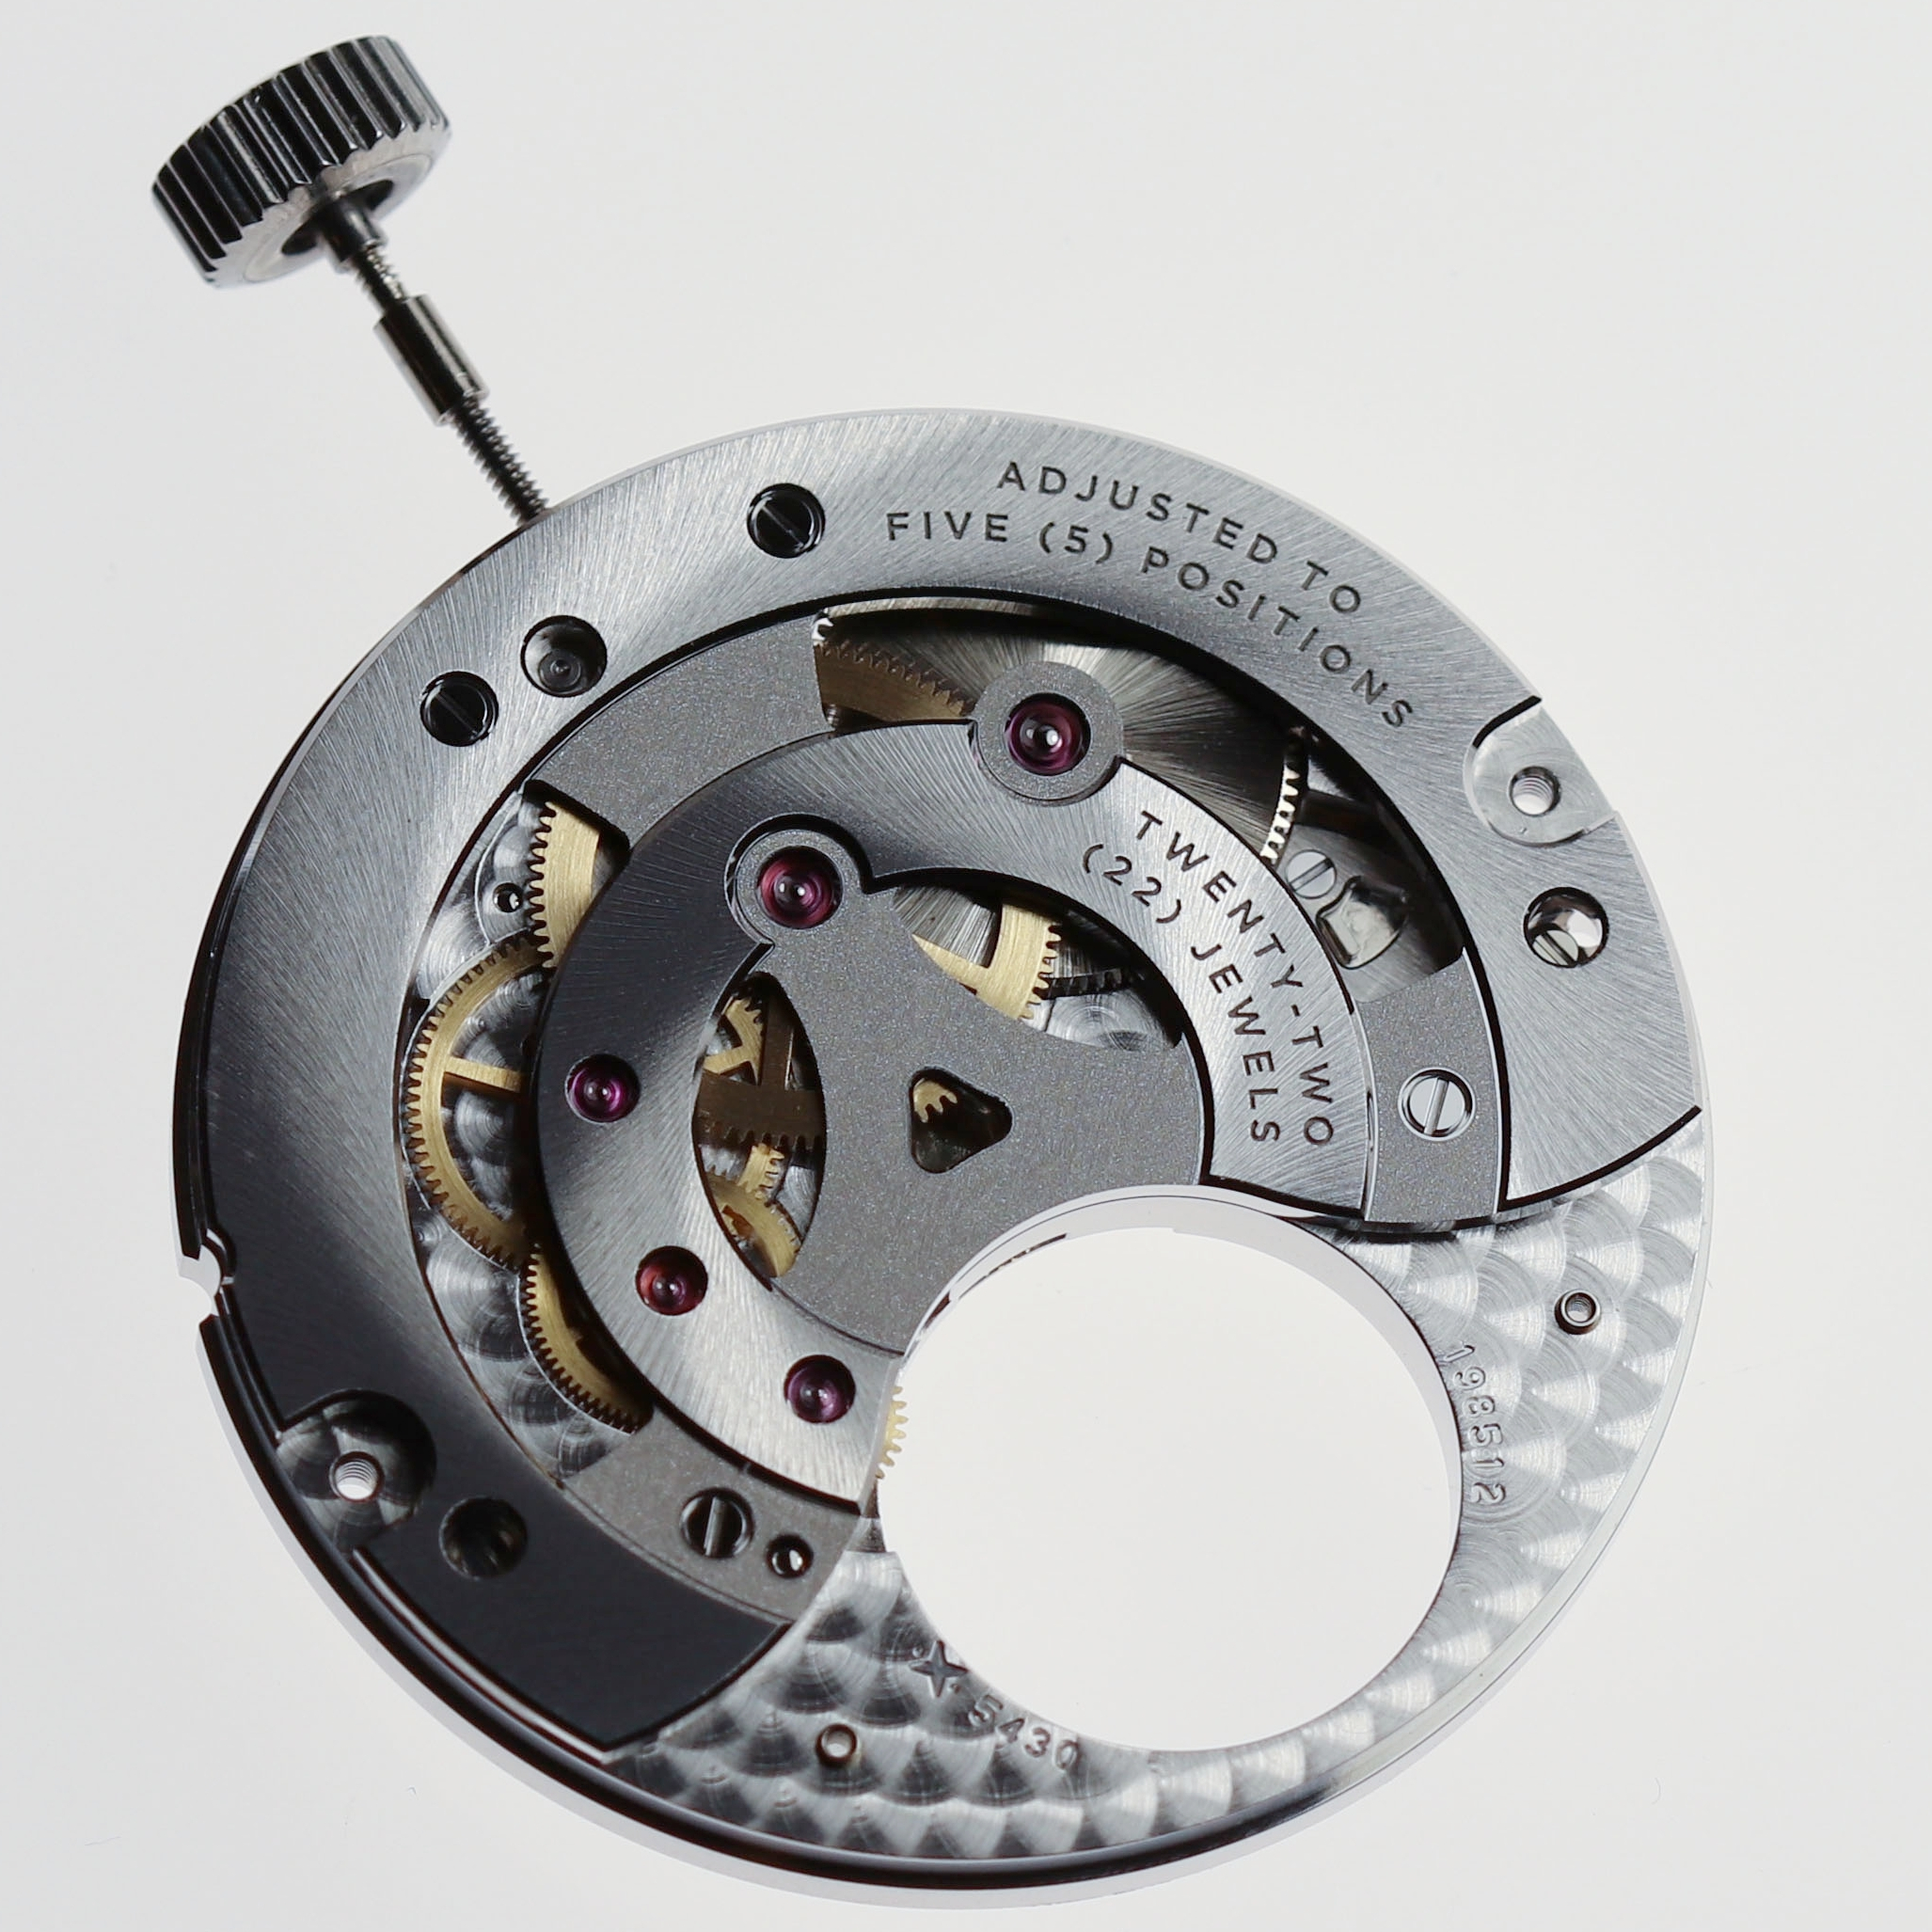 Tourbillon and its bridge removed